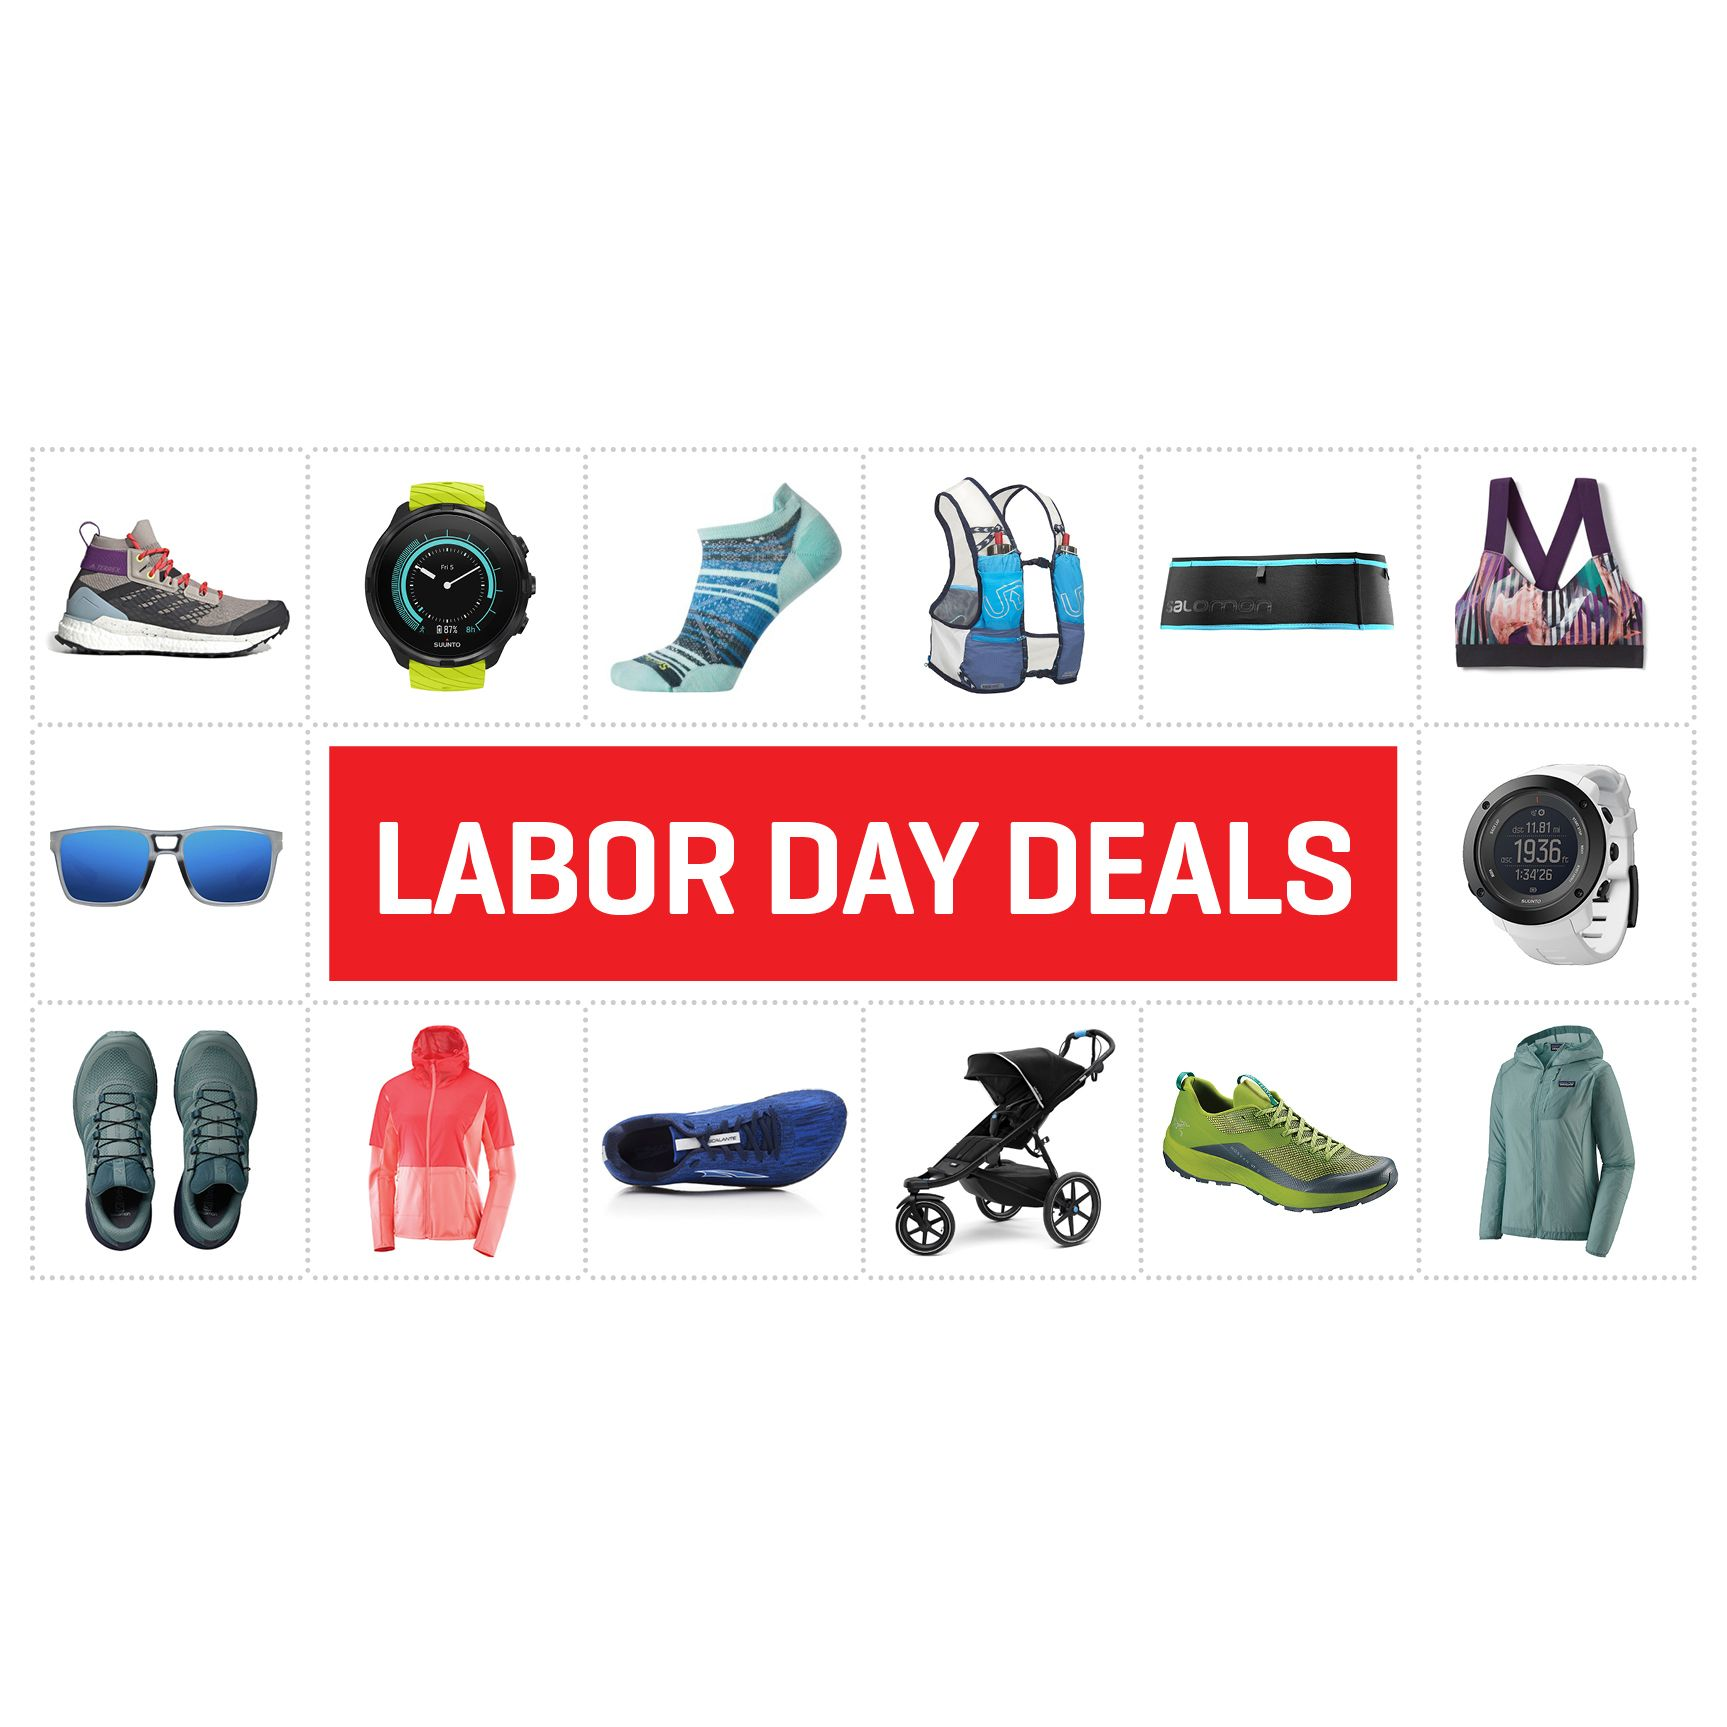 Sneakers | Cheap Clothing & Shoes Memorial Day Sale Up To 70